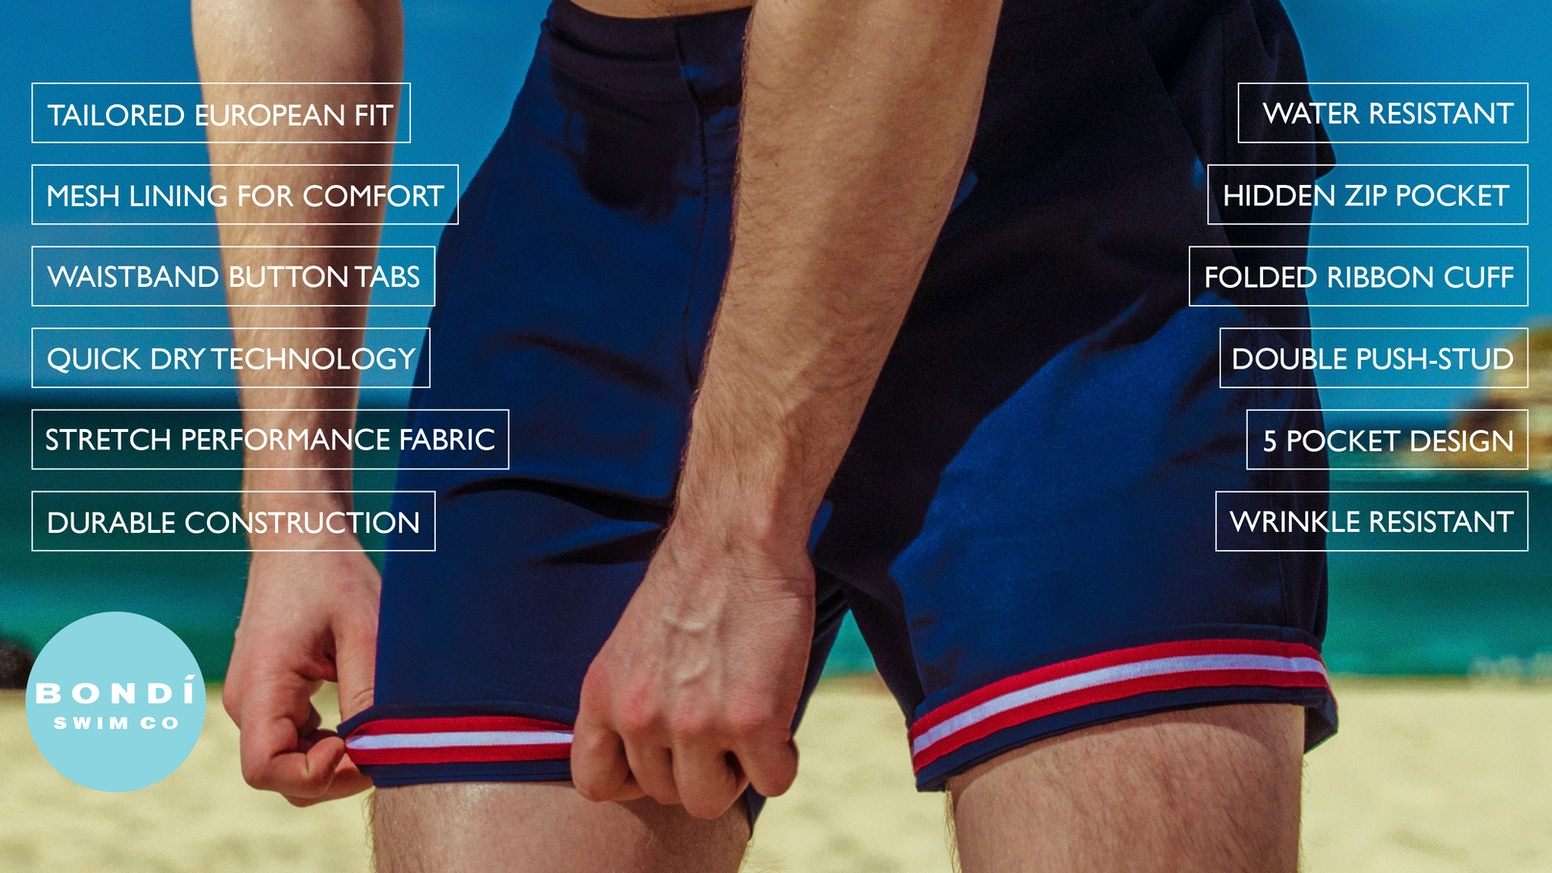 The First Ever Swim Shorts That Transition Into Stylish Tailored Shorts, Engineered For All Day Comfort and Style.